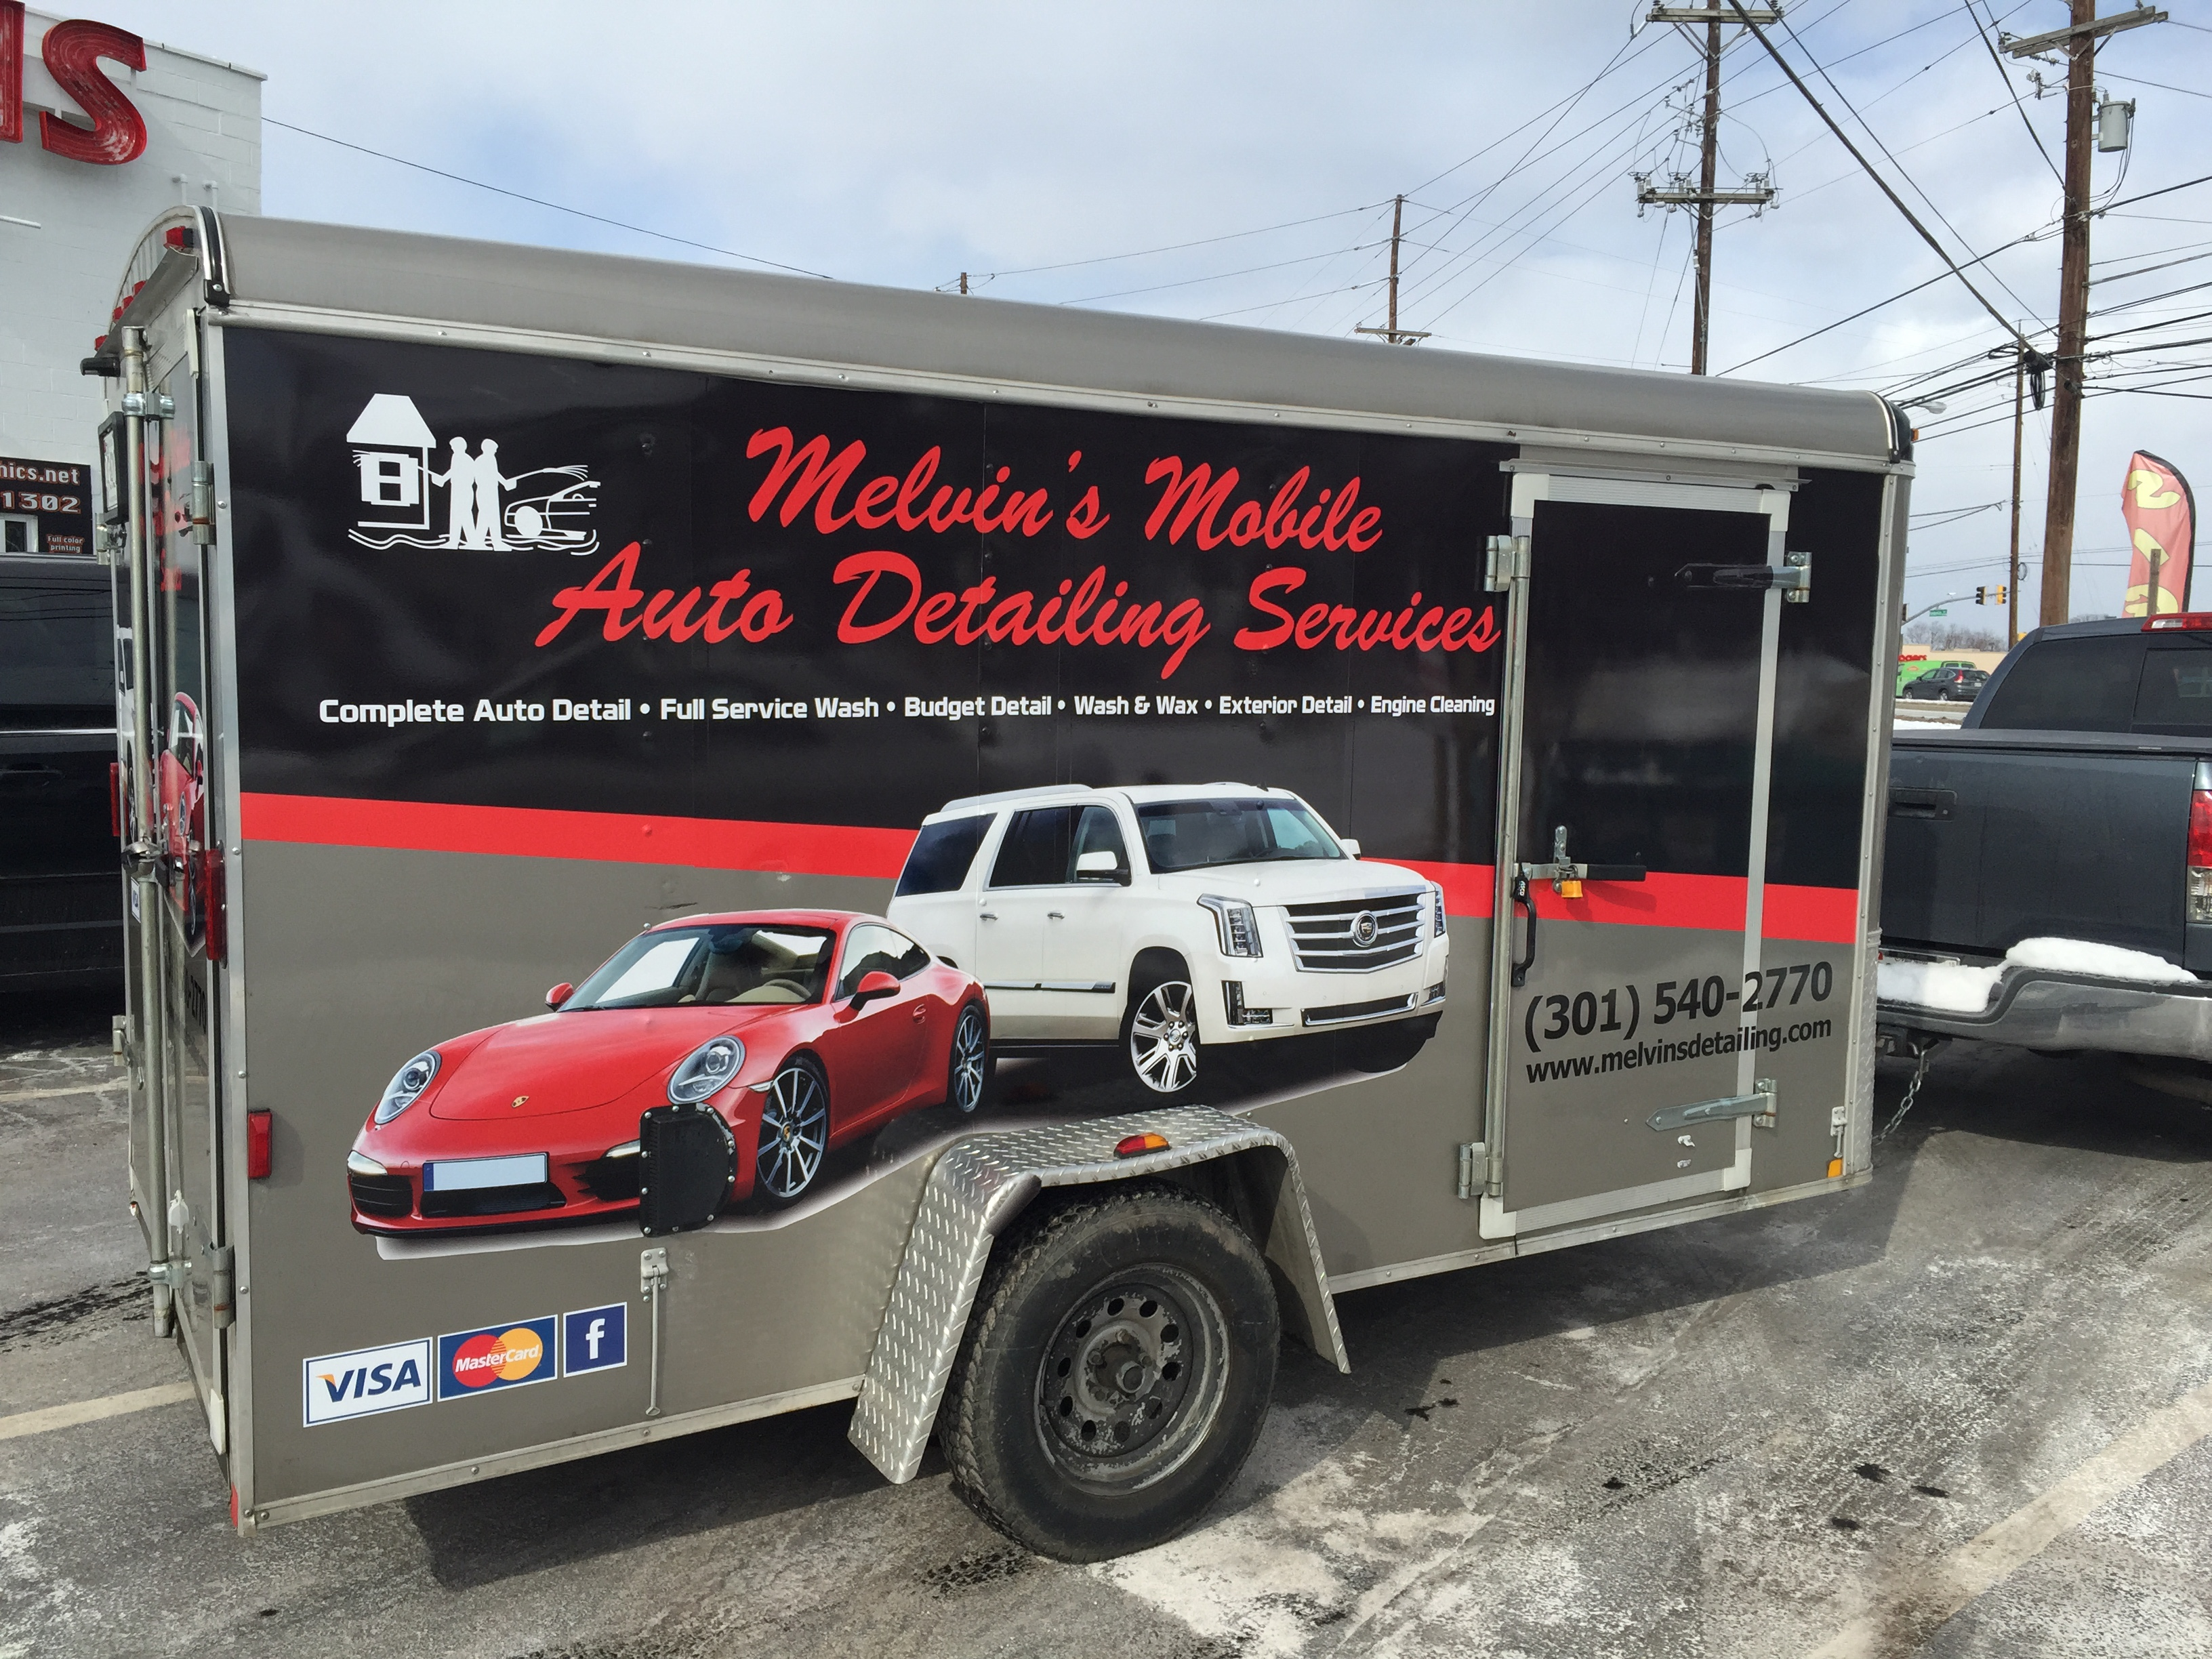 Trailer Wraps | Signs in Rockville